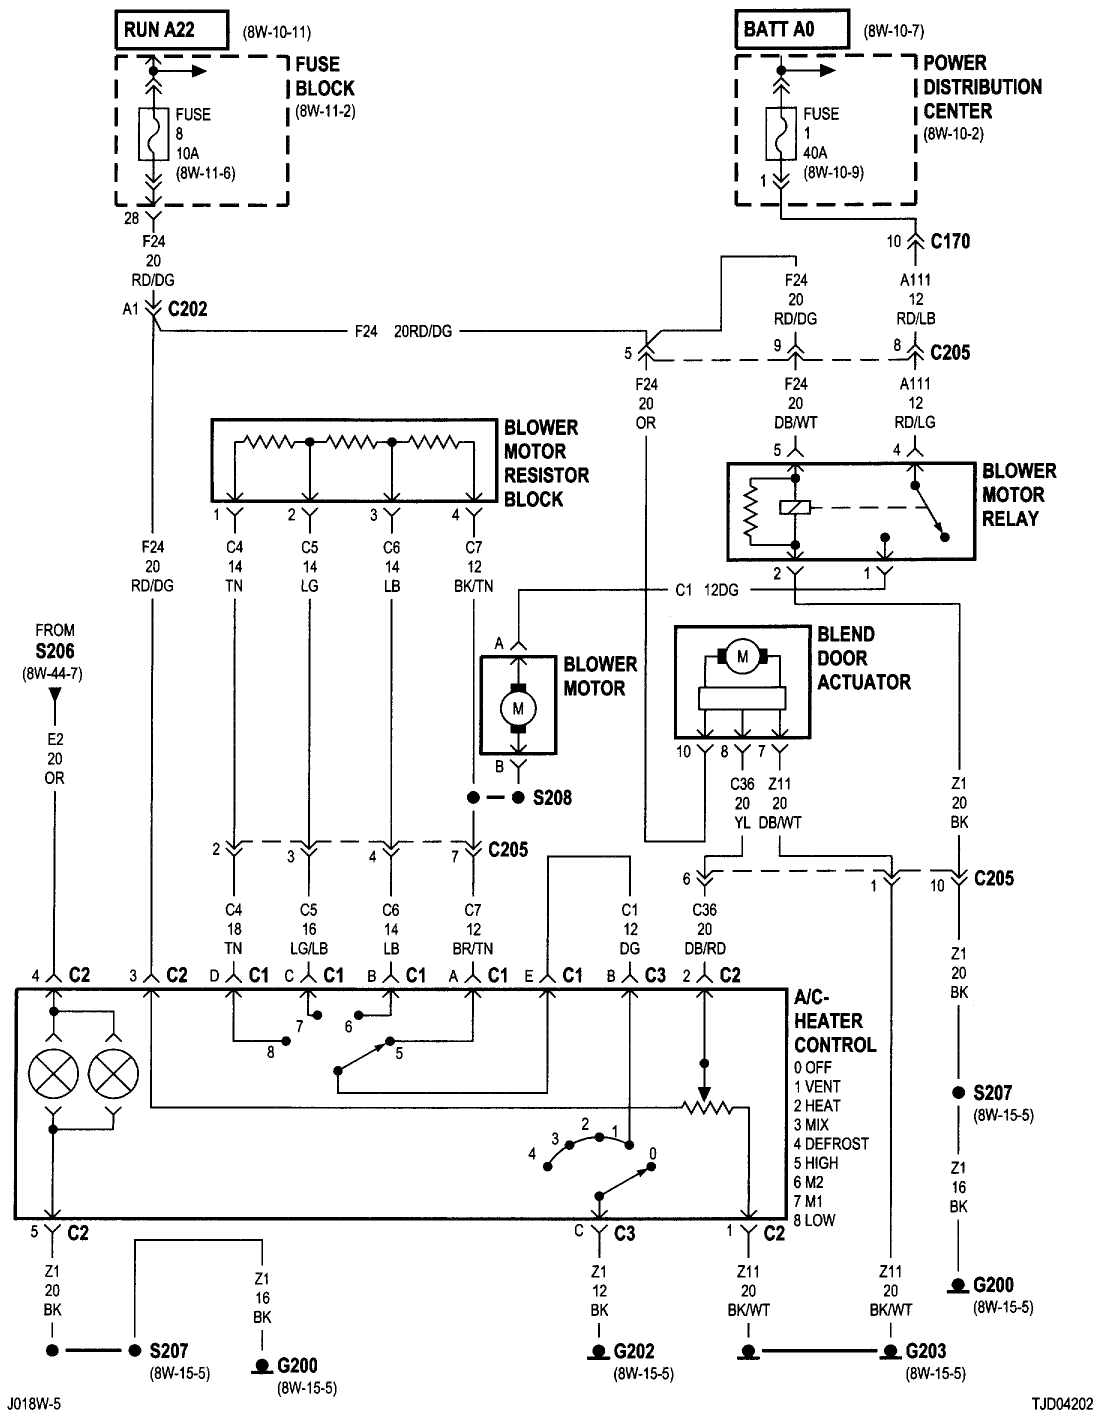 Jeep Liberty Radio Wiring Diagram on 2003 jeep grand cherokee radio wiring diagram, 1989 jeep cherokee radio wiring diagram, 1996 jeep grand cherokee radio wiring diagram, 2002 jeep grand cherokee radio wiring diagram, 2005 jeep grand cherokee radio wiring diagram, 2006 jeep grand cherokee radio wiring diagram,